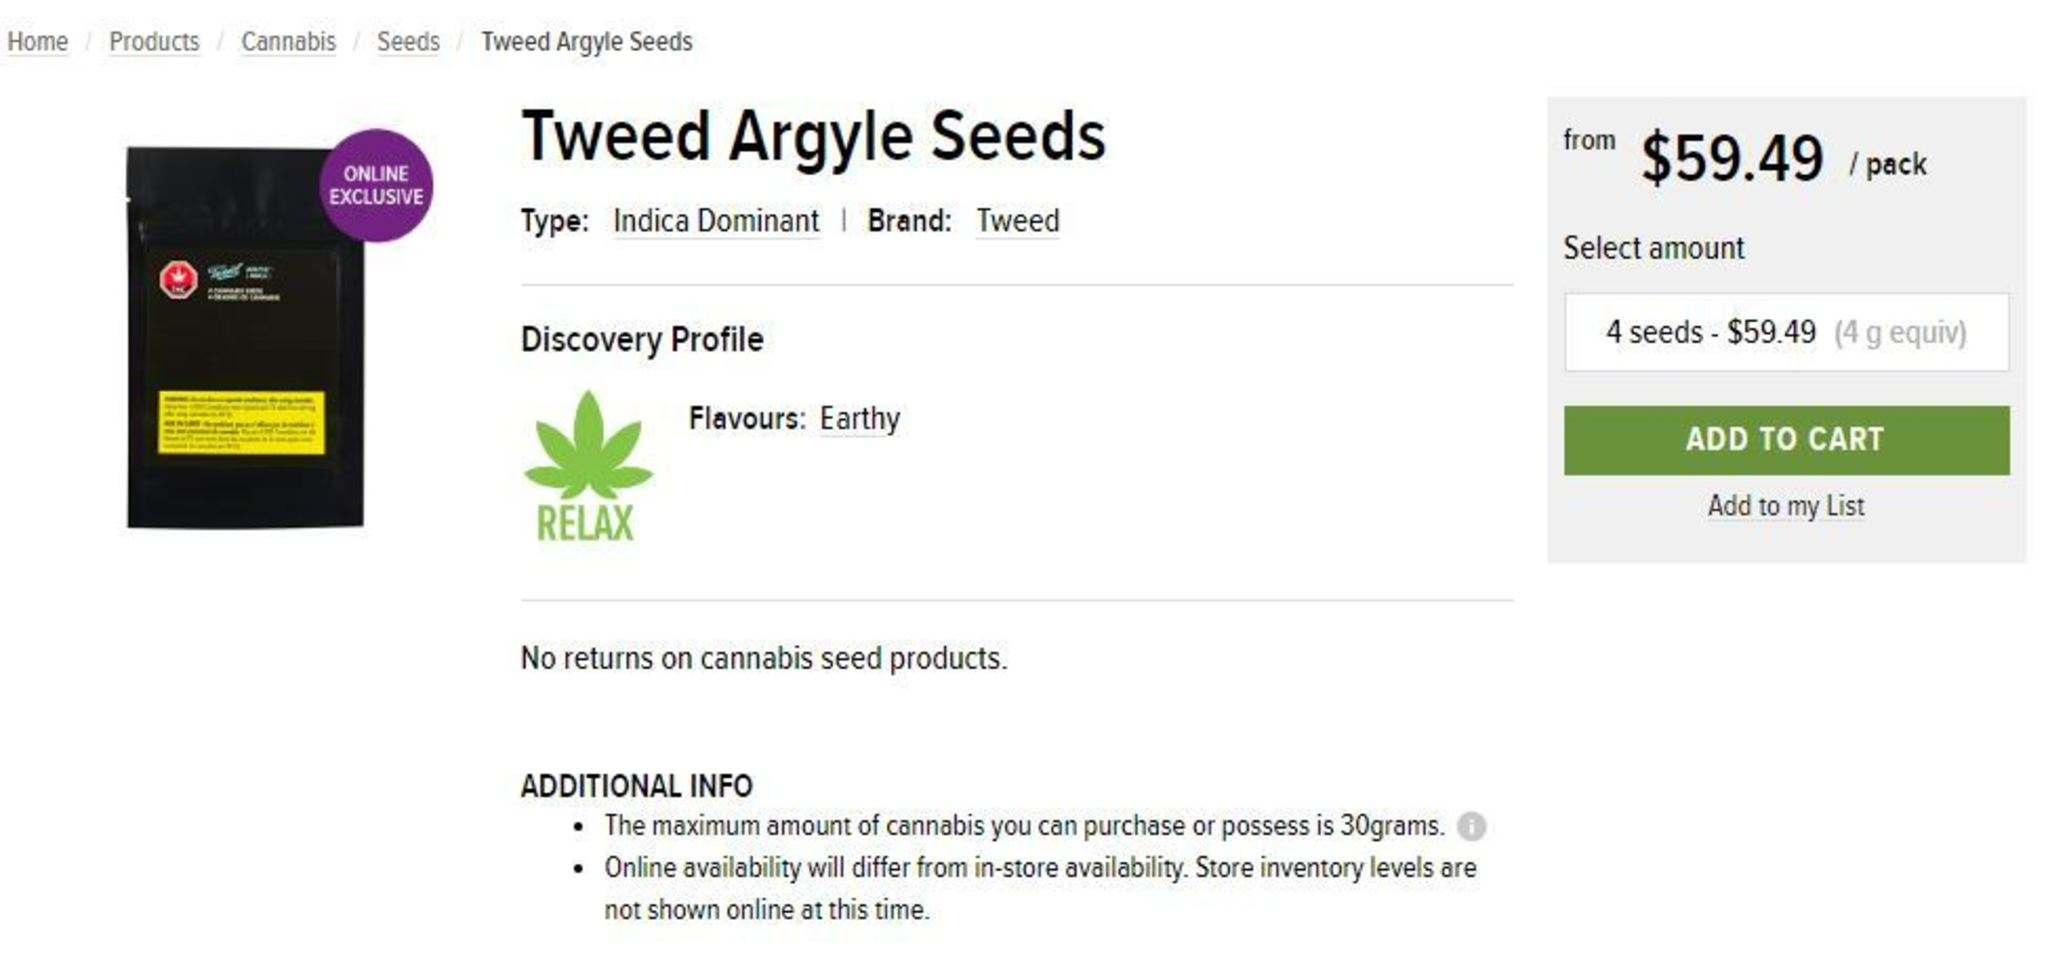 Legal cannabis seeds for sale through Nova Scotia's licensed provincial cannabis retailer. (NSLC Cannabis)</p>